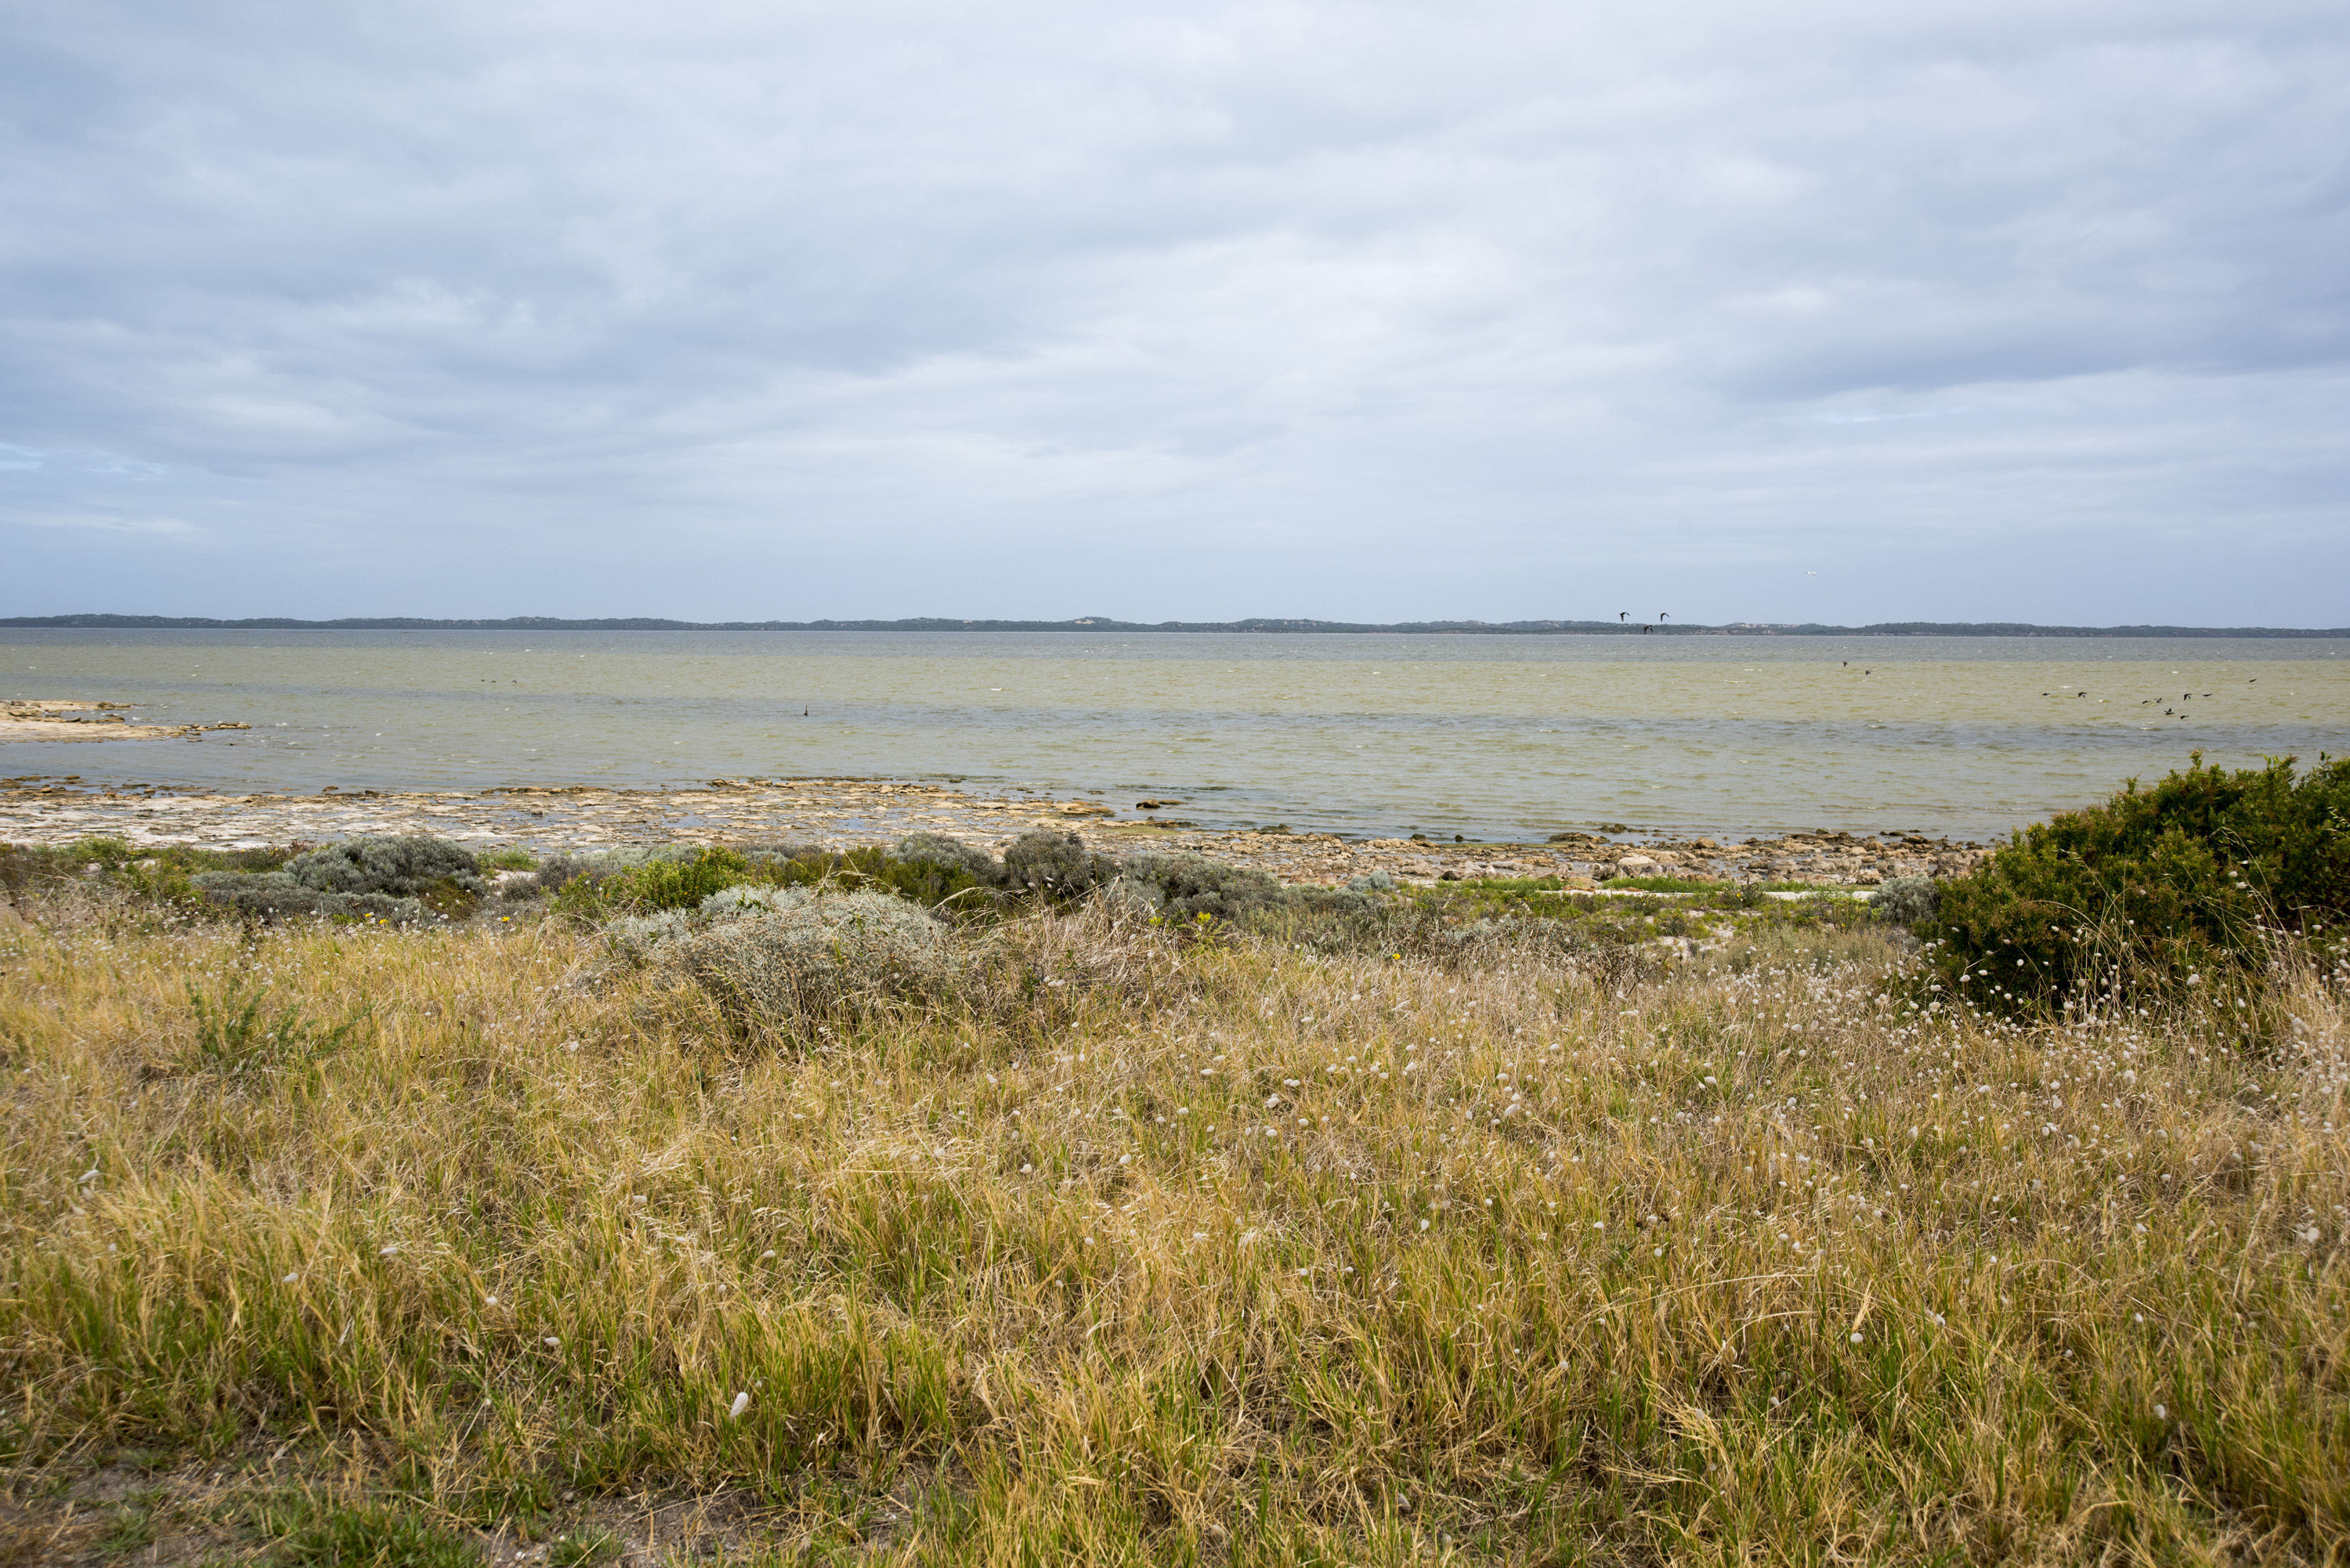 Coastal grasses and vegetation, Coorong Coast, South Australia looking out to sea on a cloudy day